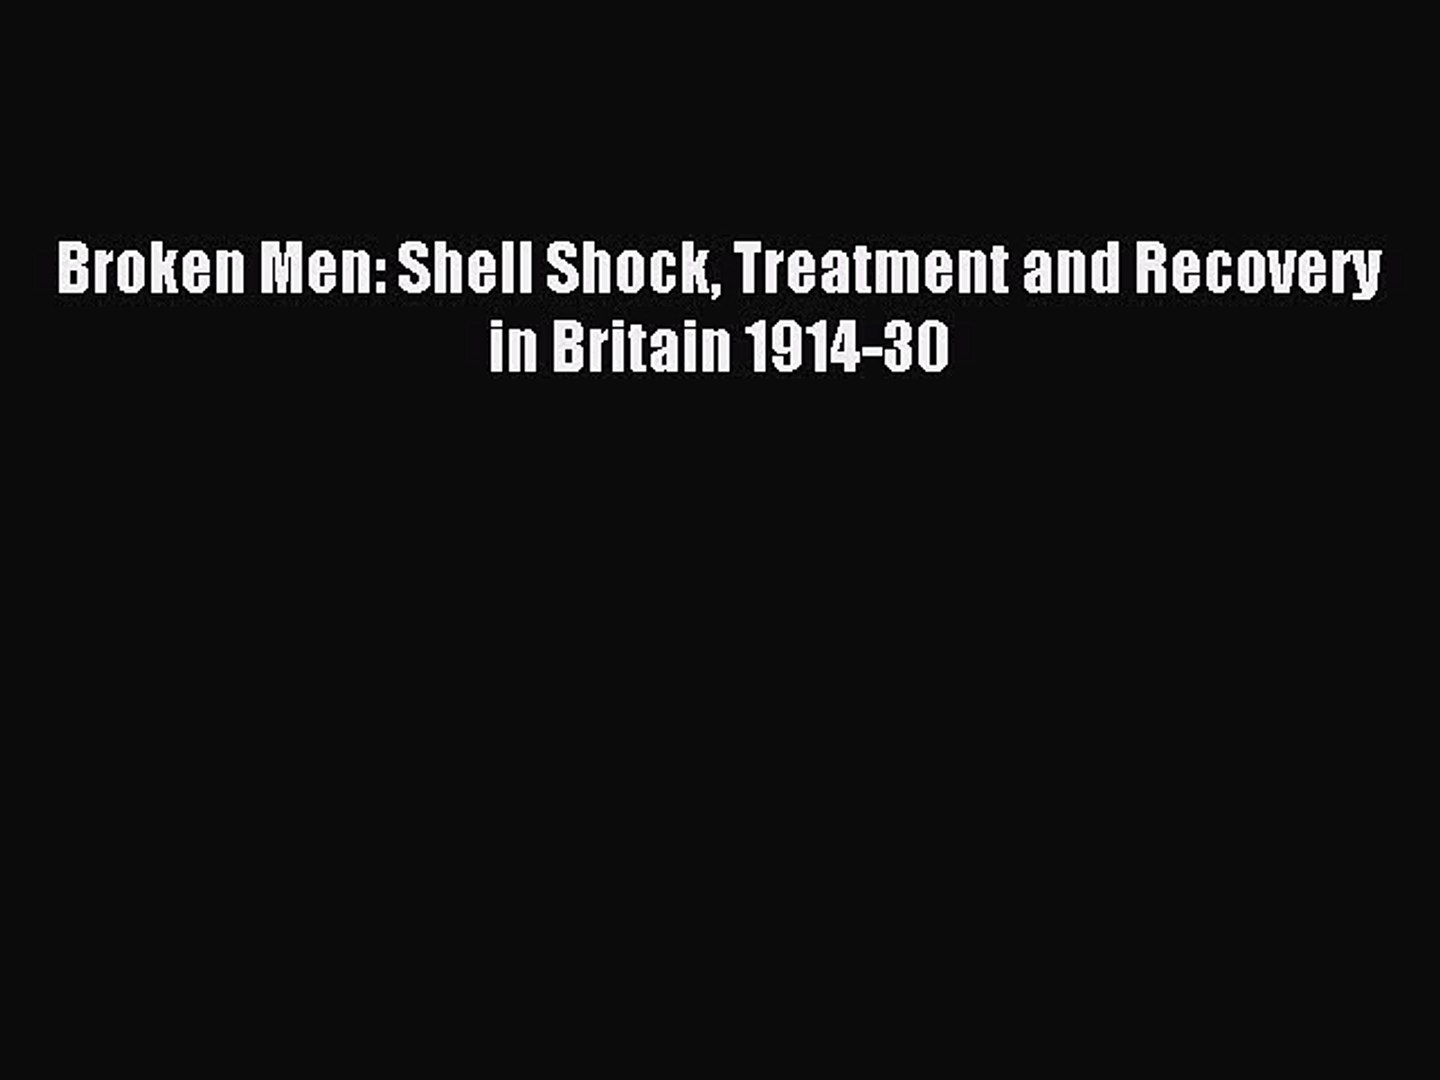 Read Broken Men: Shell Shock Treatment and Recovery in Britain 1914-30 PDF Free